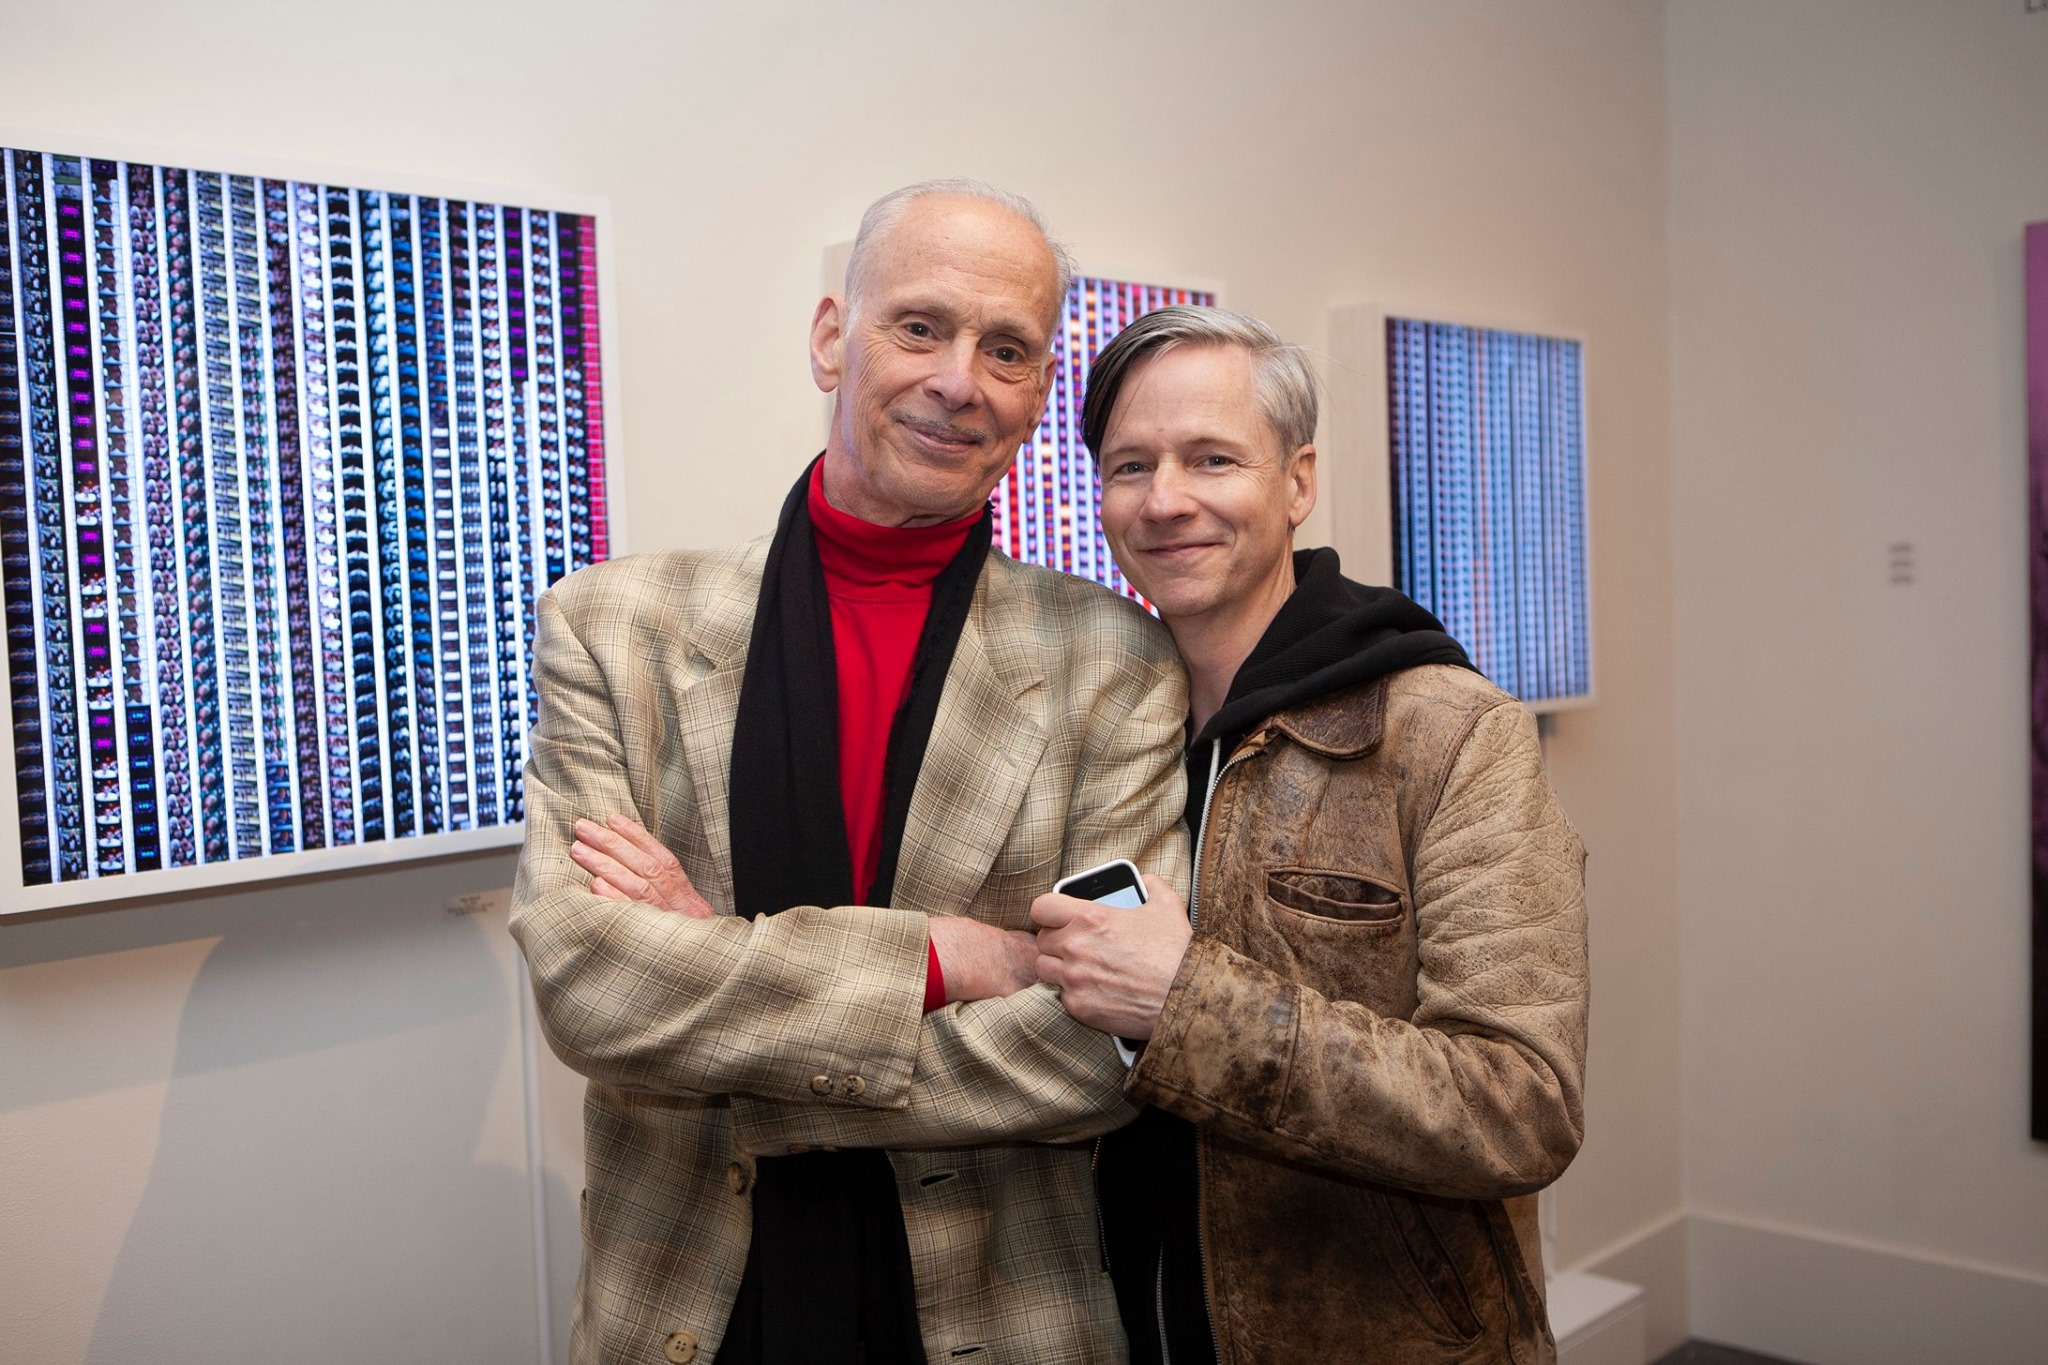 John Waters & Johncameronmitchell at the SCHOOLHOUSE GALLERY